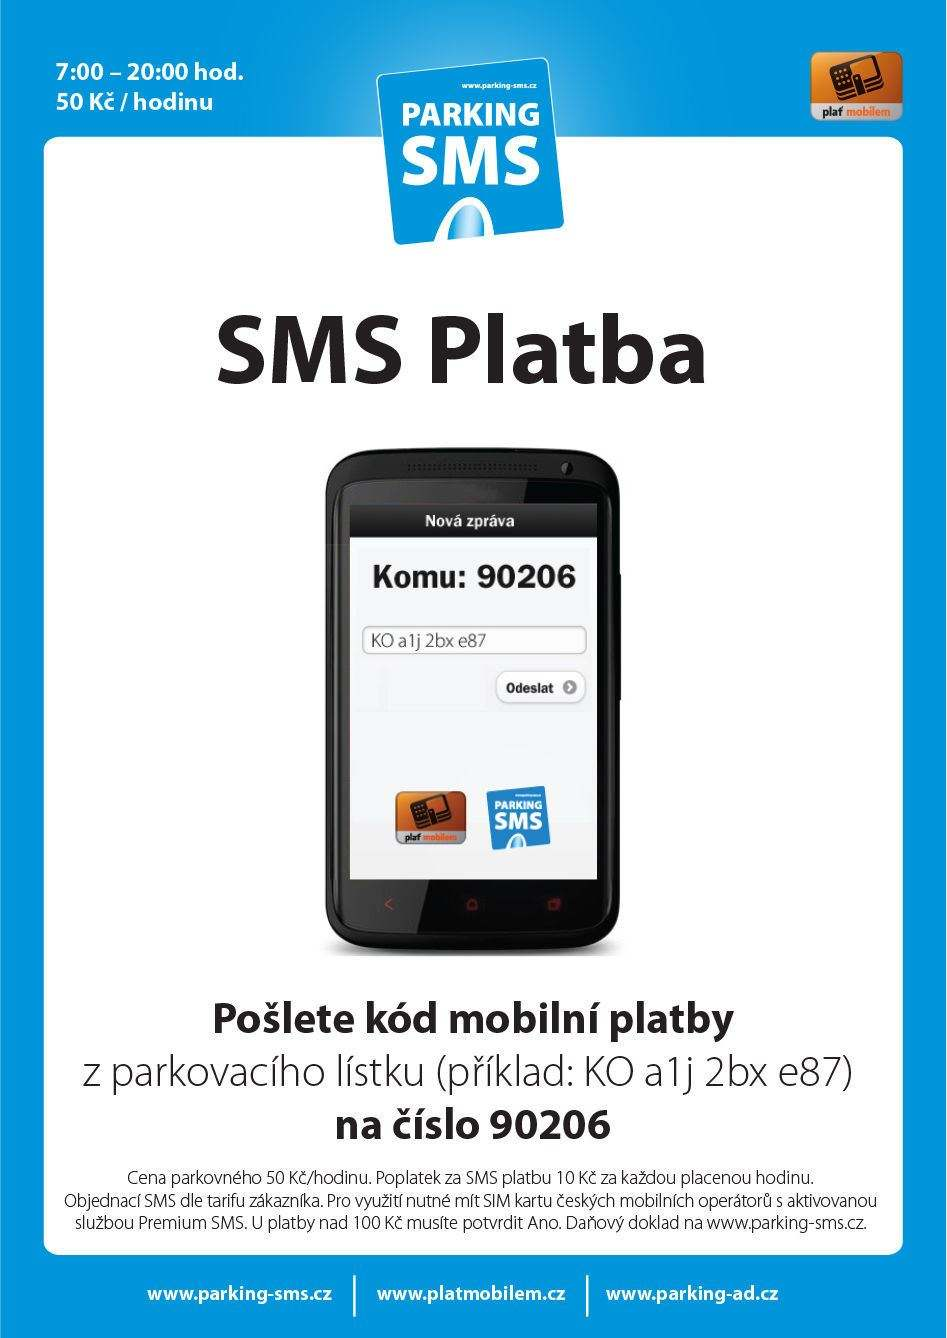 parking - SMS payment